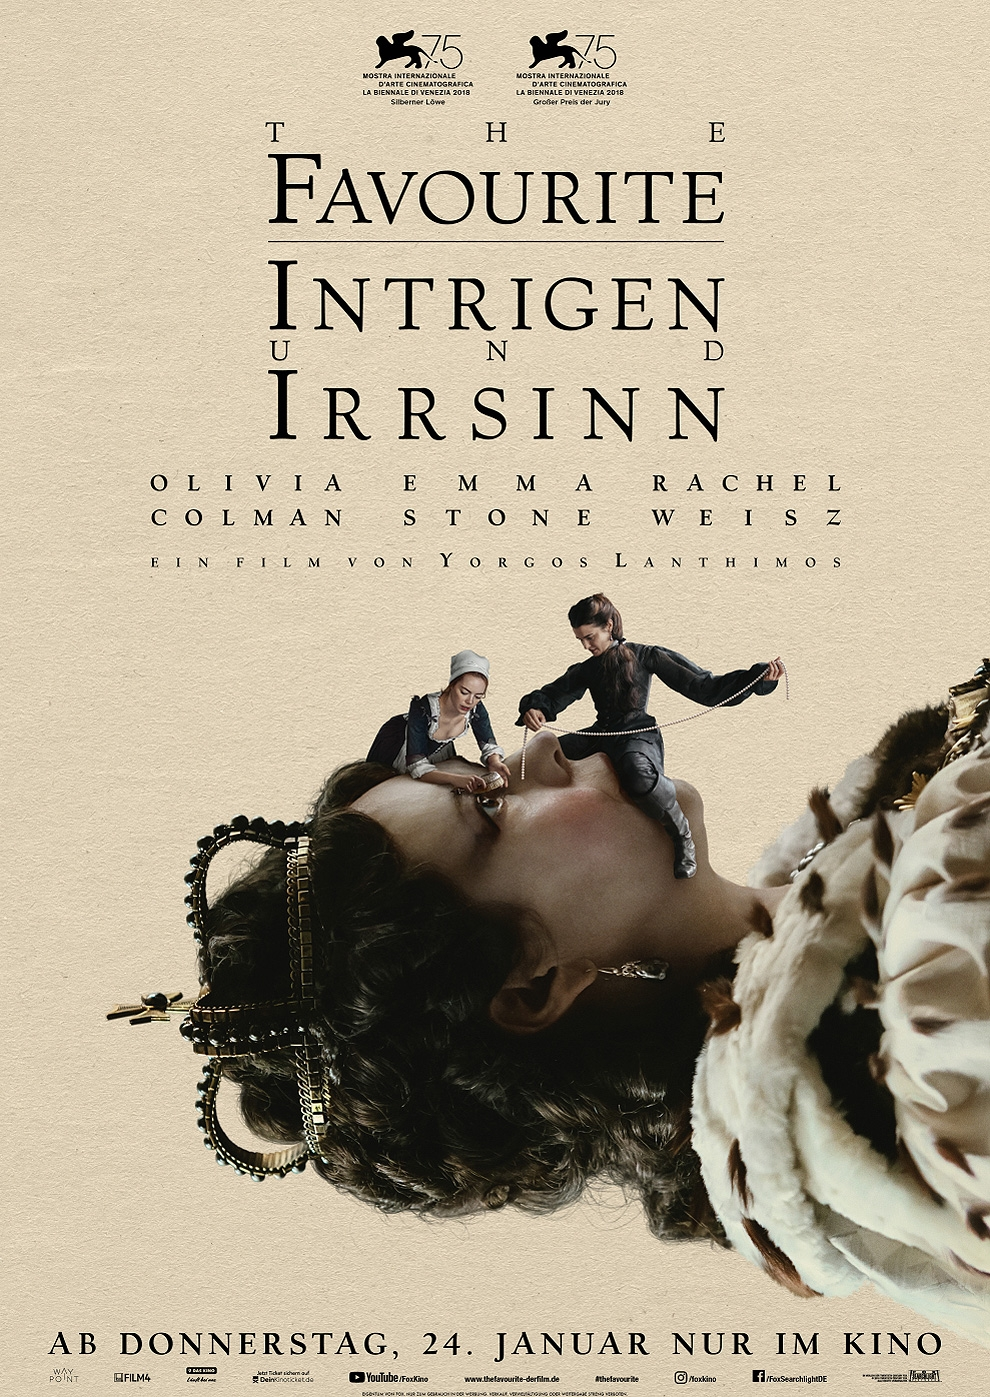 The Favourite - Intrigen und Irrsinn (Poster)